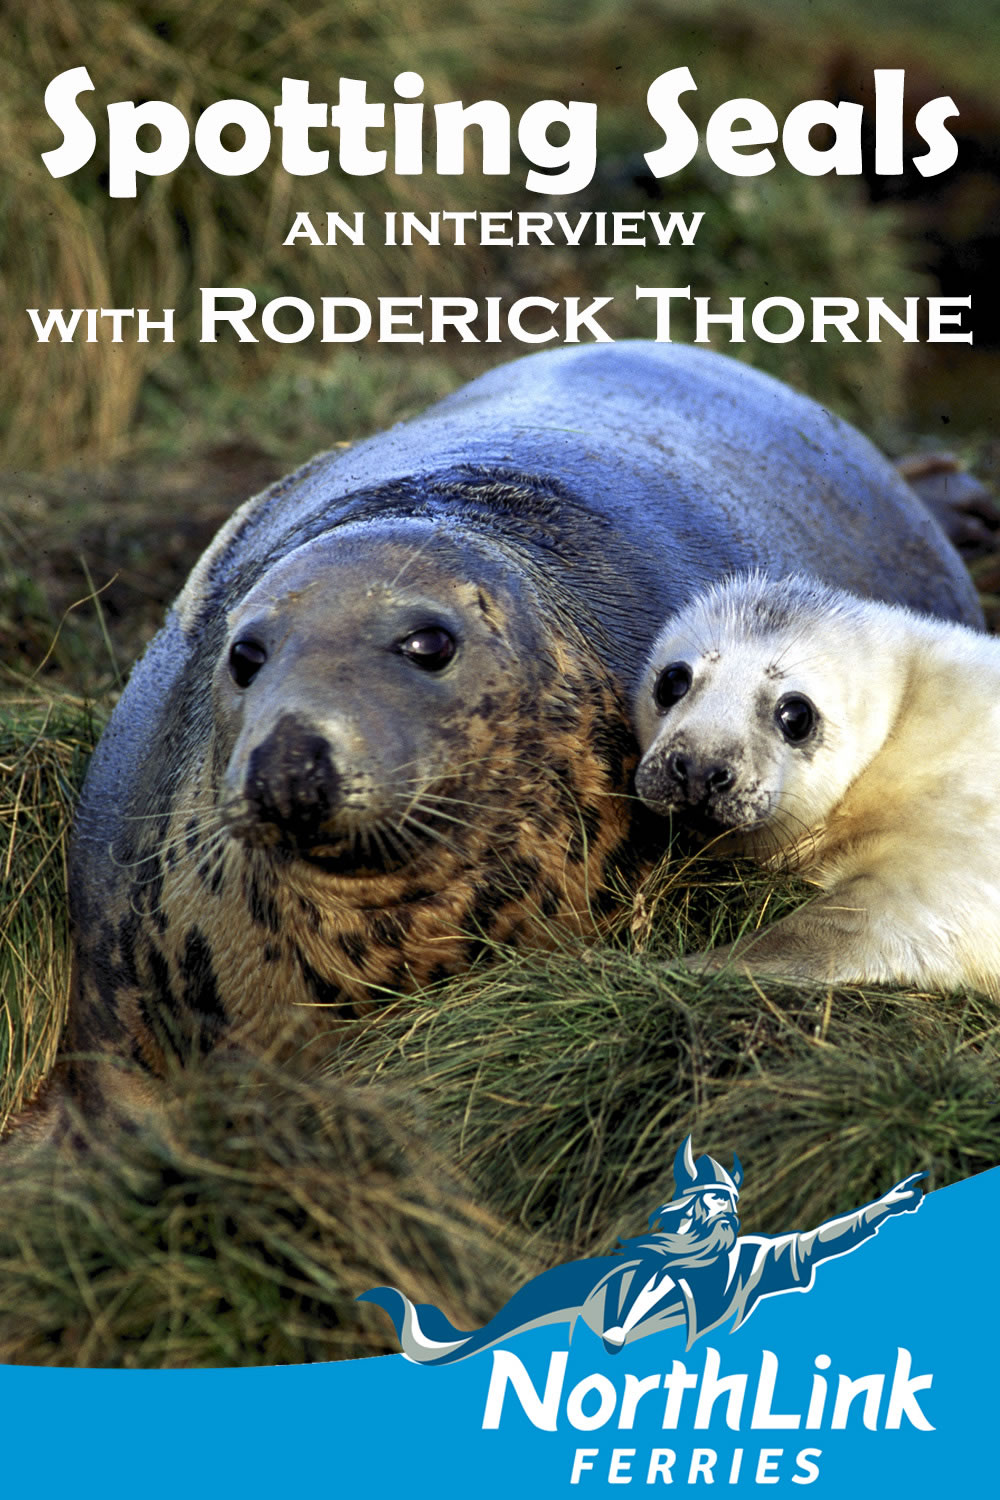 Spotting Seals - an interview with Roderick Thorne